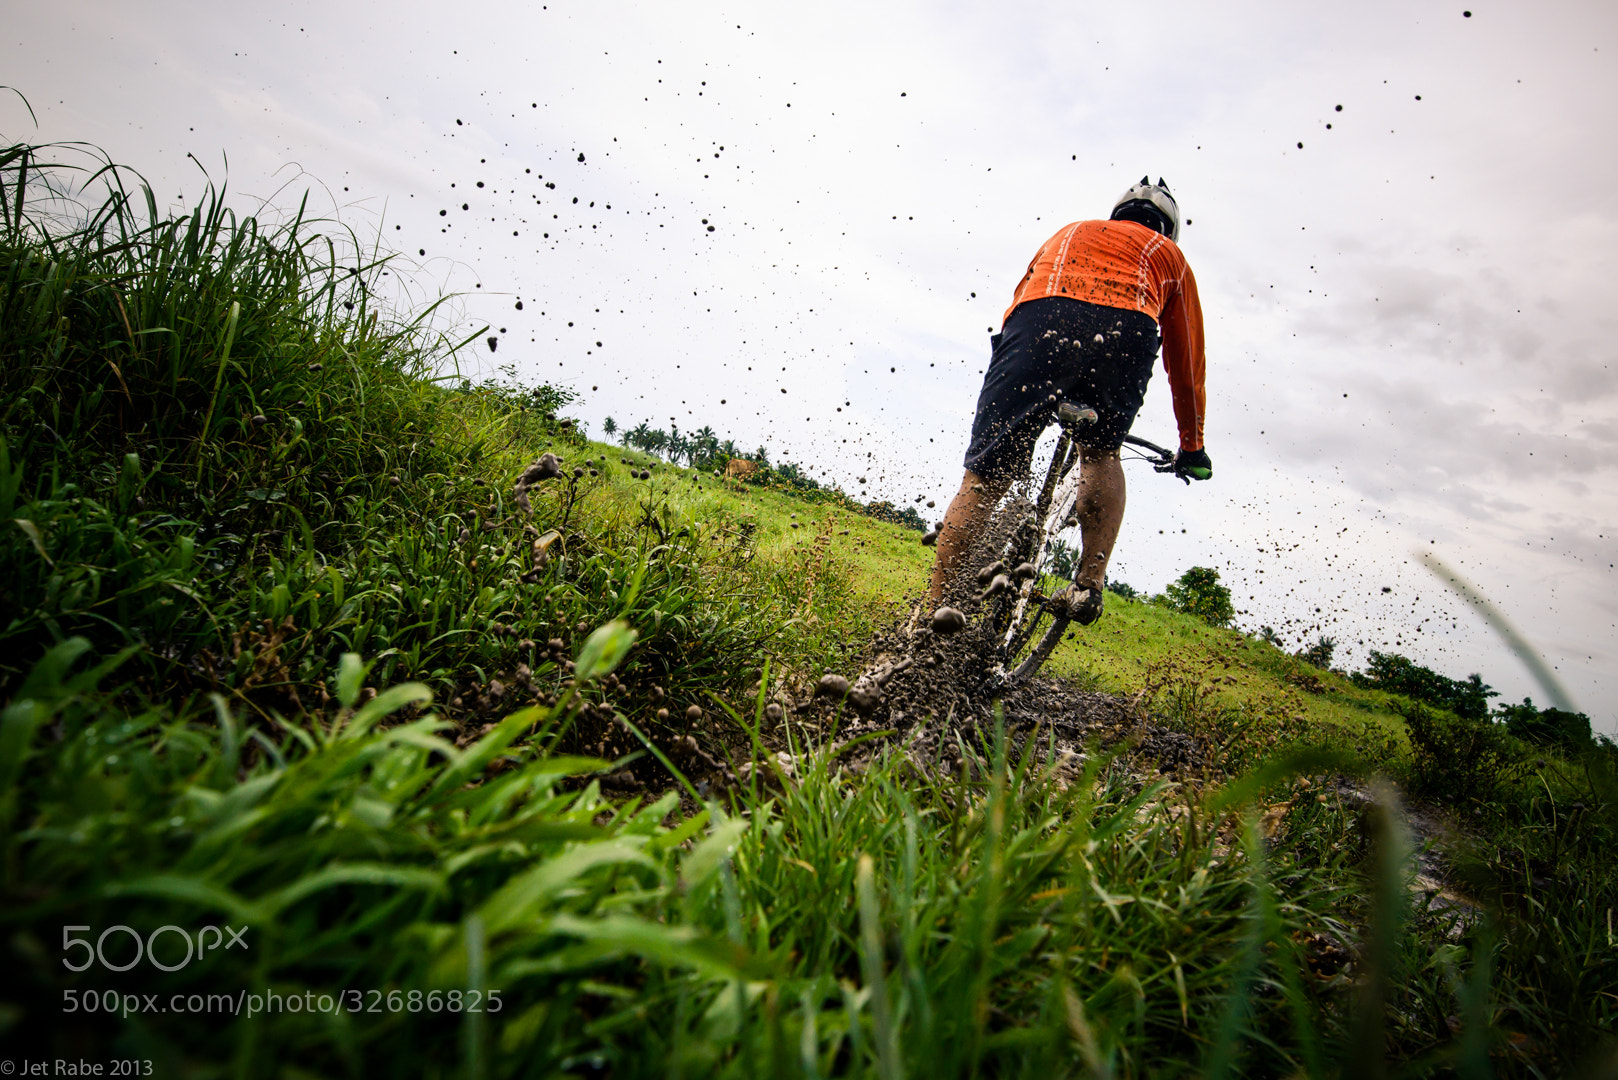 Photograph Dirt by Jet Rabe on 500px